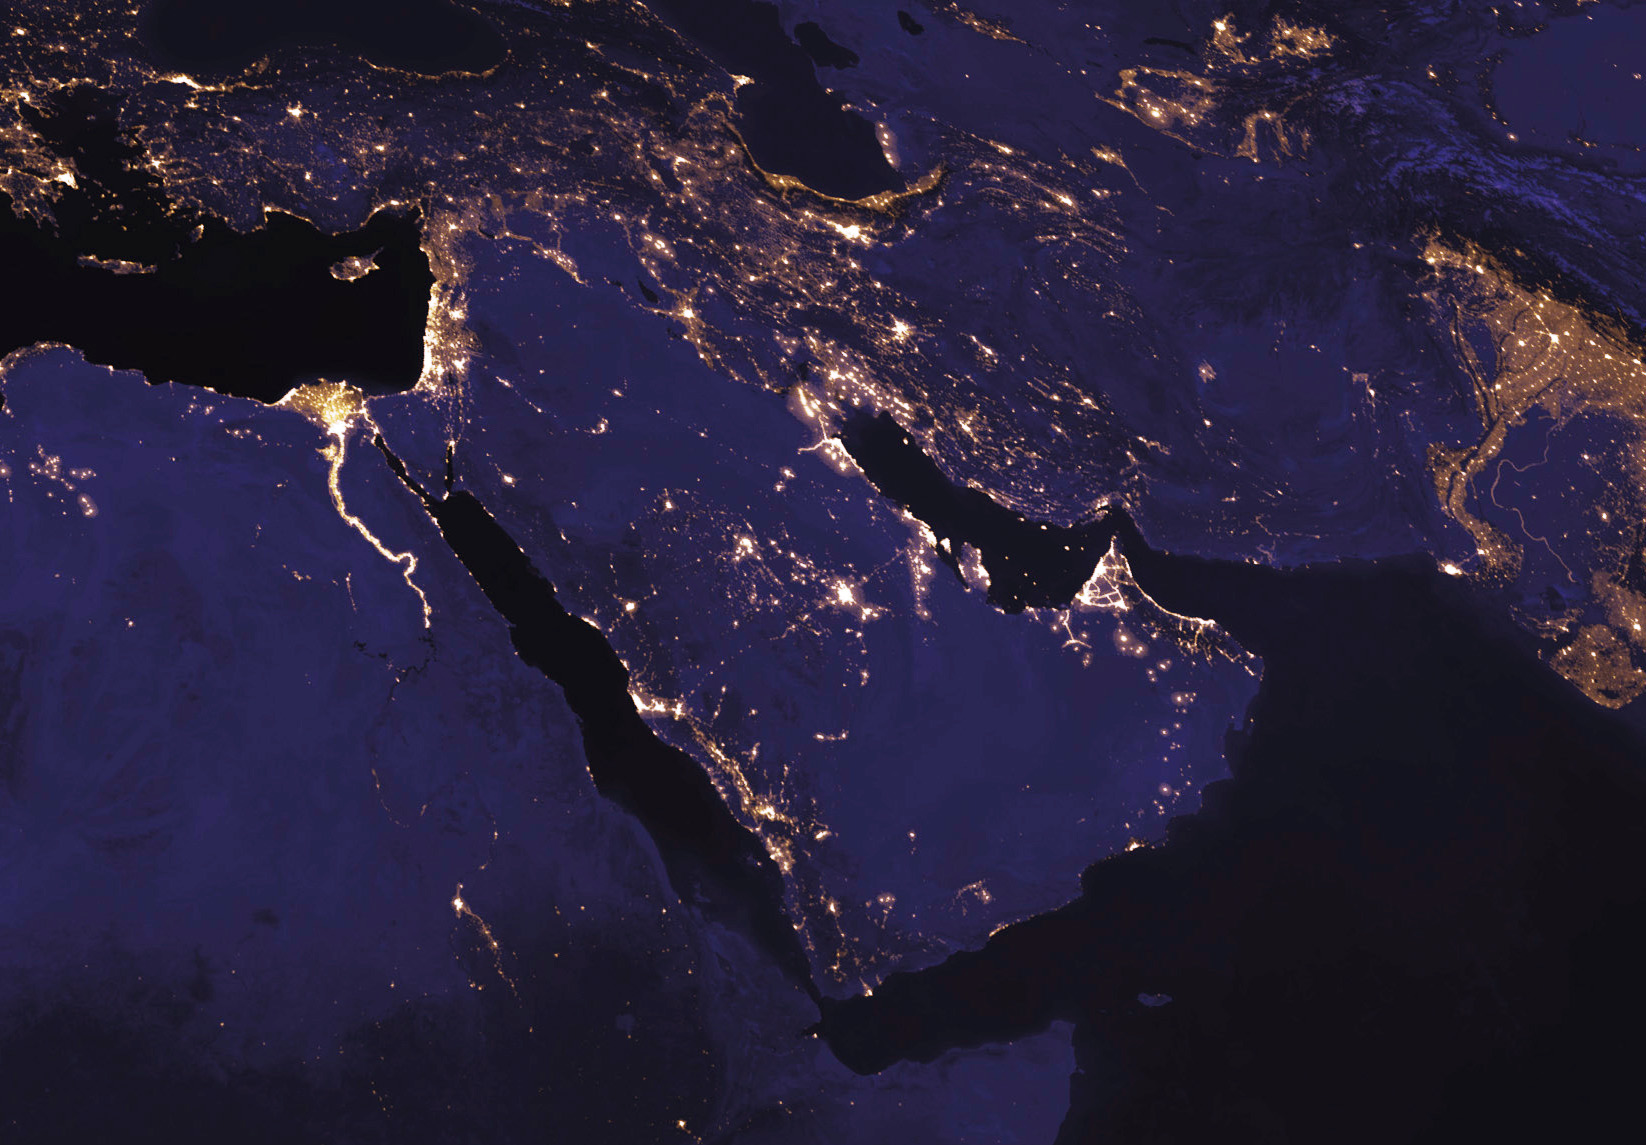 The Middle East at night from space